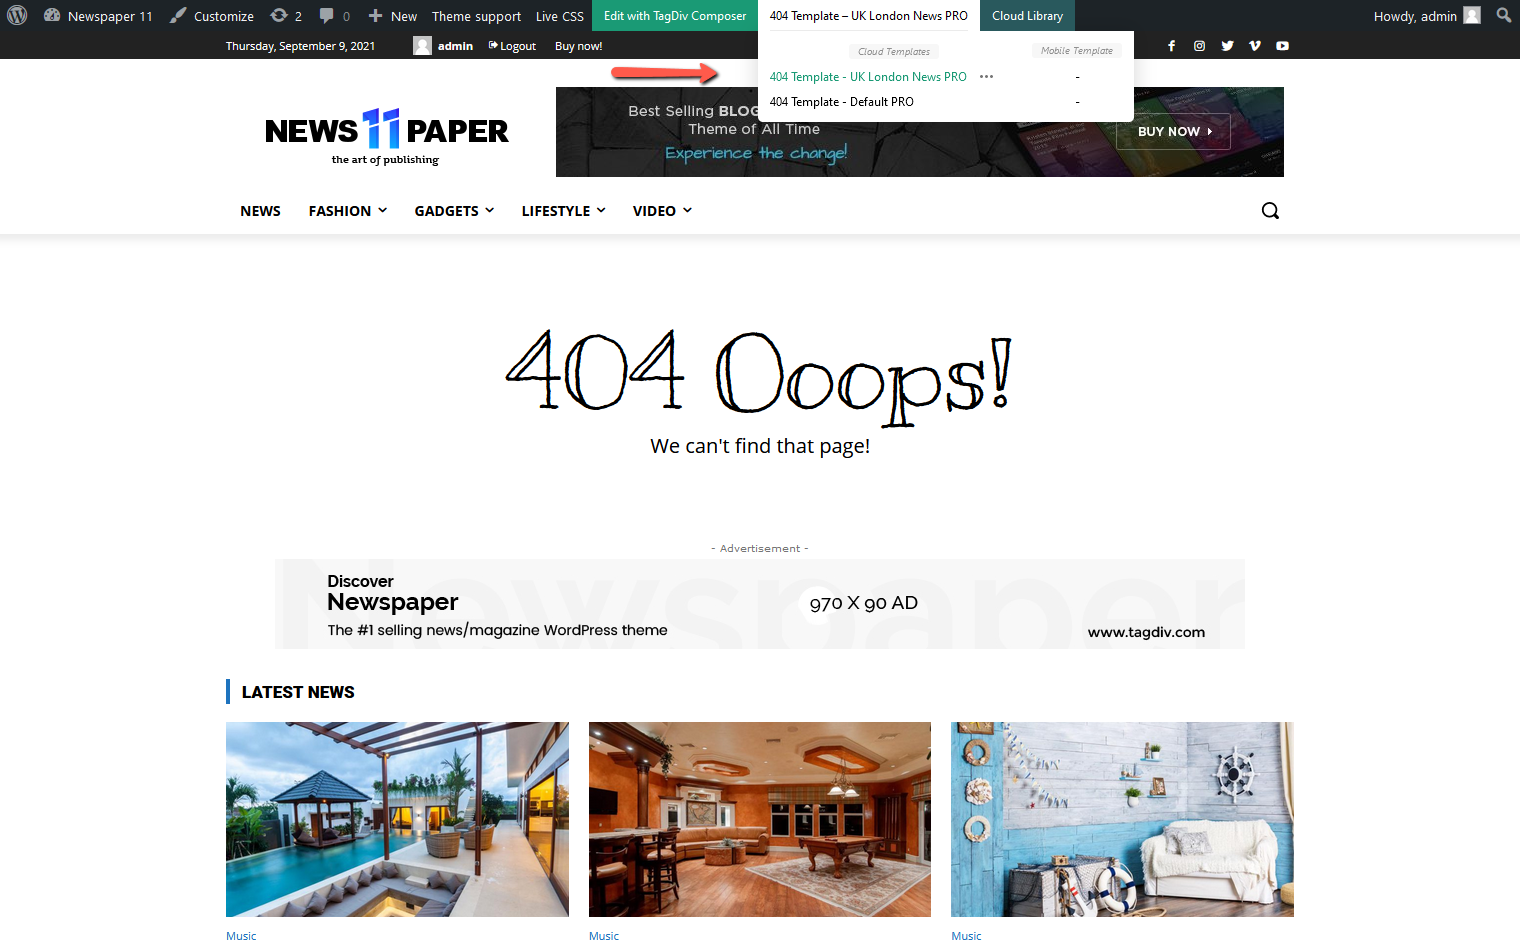 tagDiv Cloud Library - 404 Template